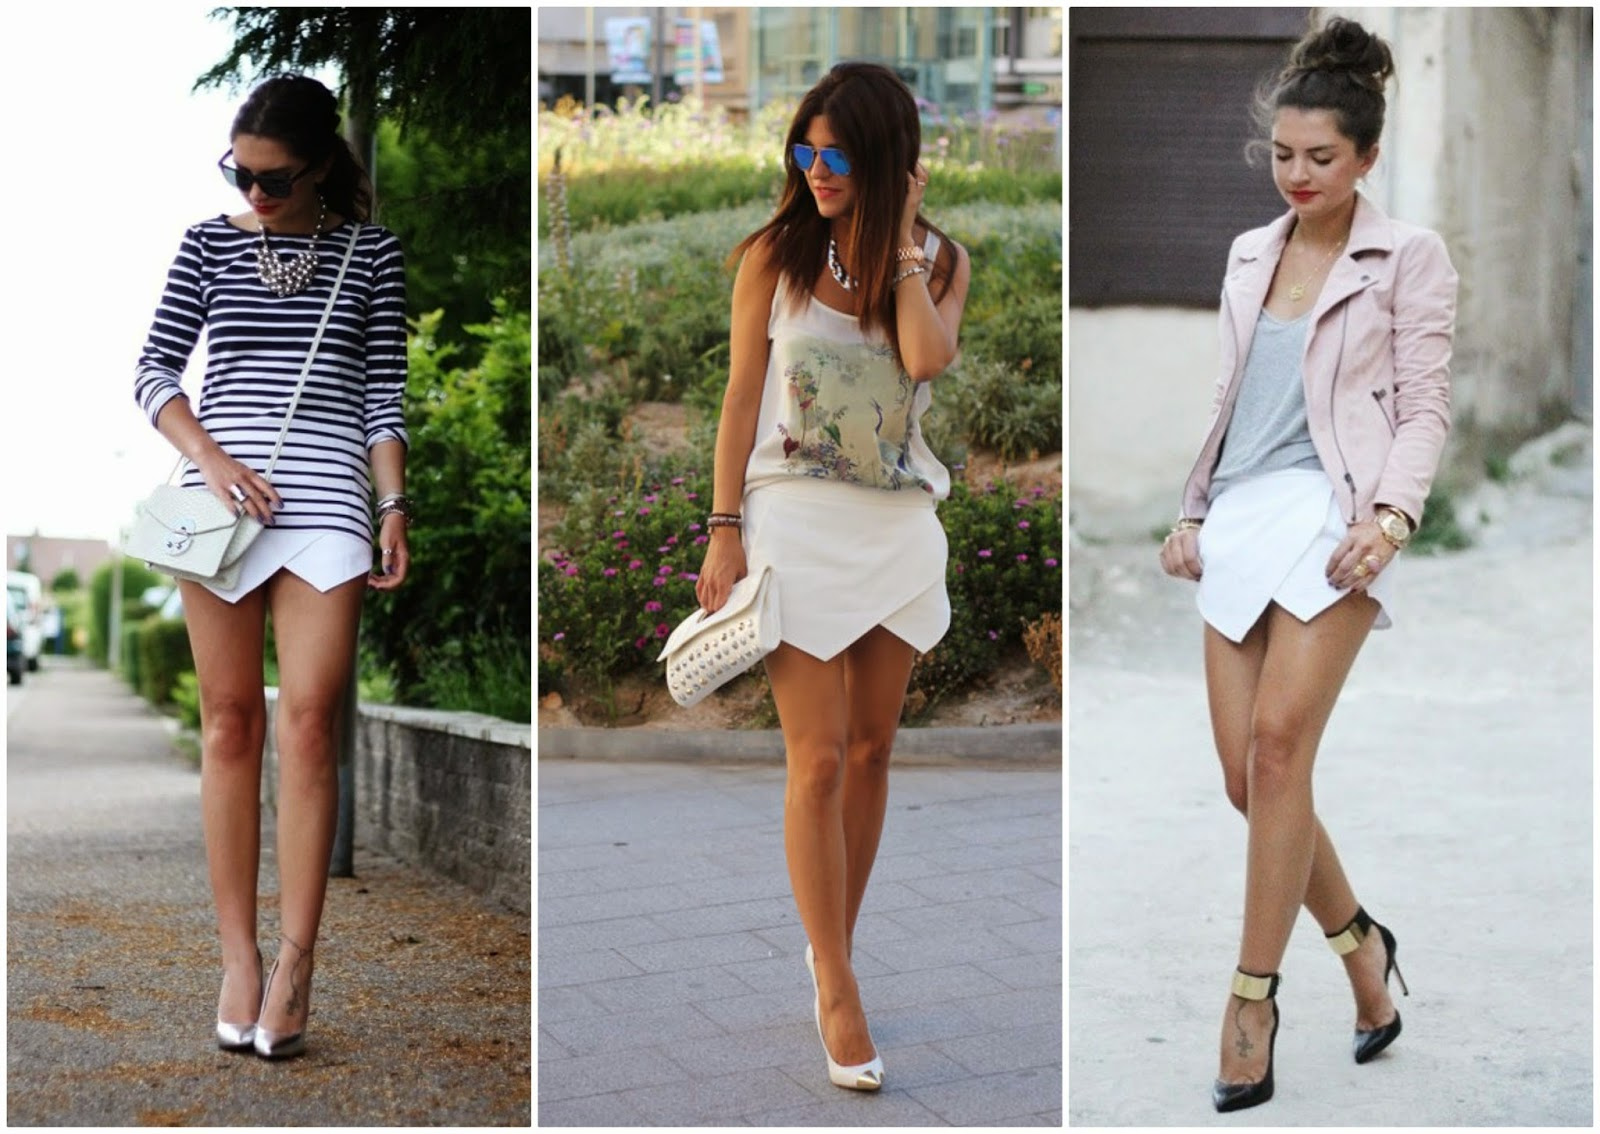 Zara white skort, skort outfit ideas, styling option